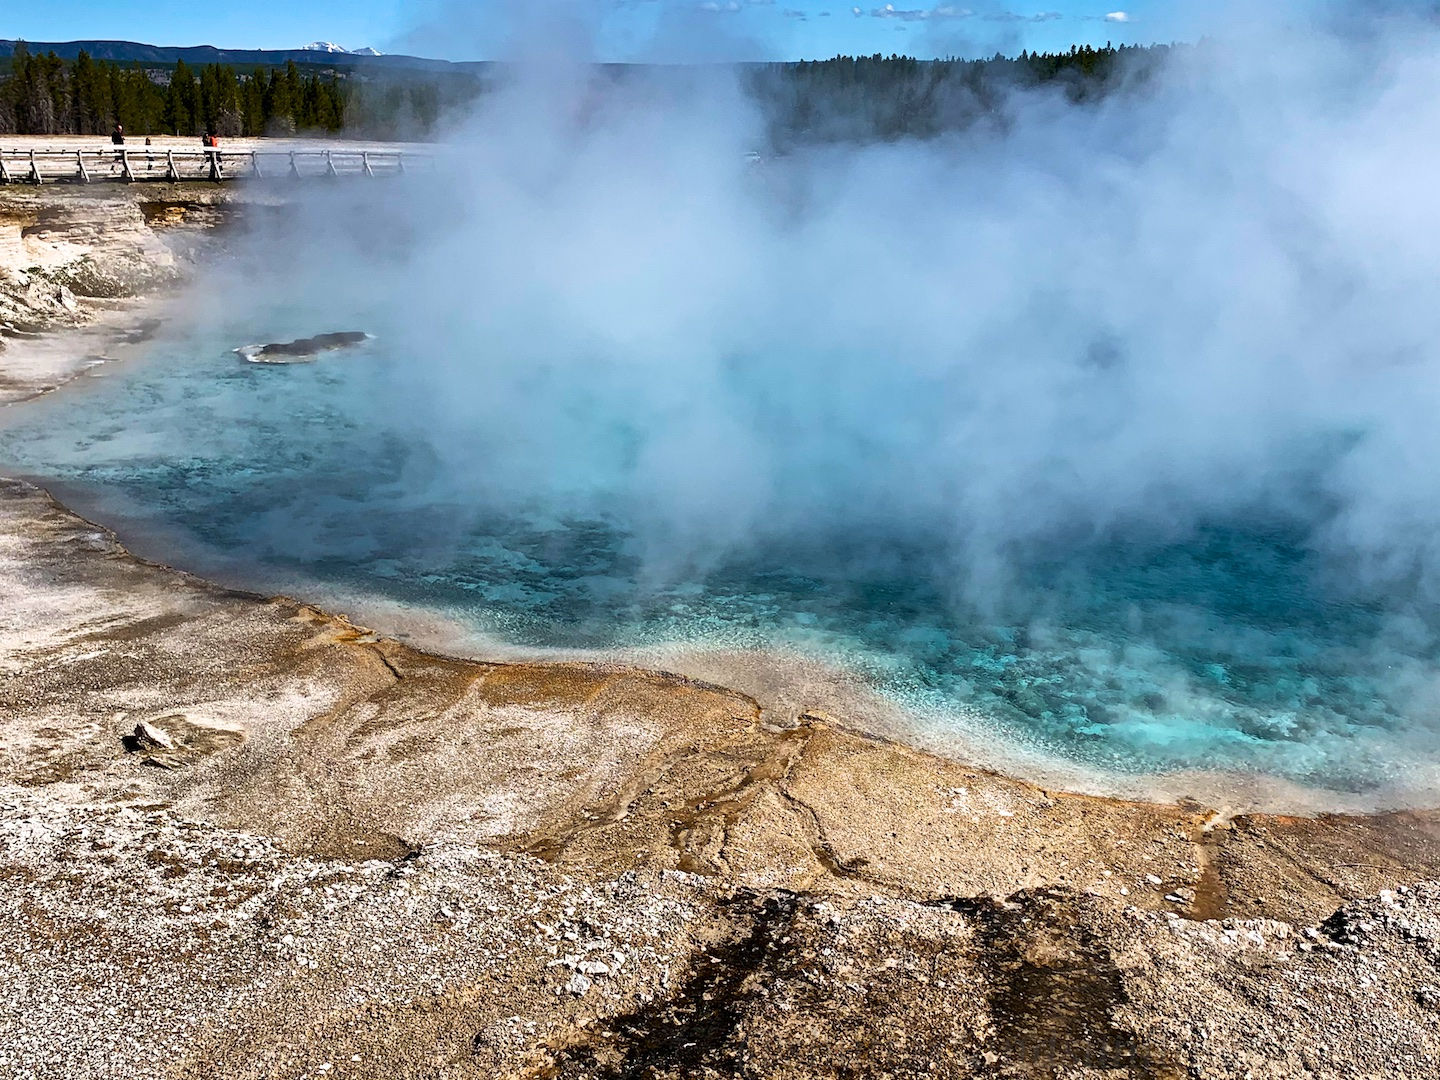 Excelsior Geyser, Yellowstone National Park, USA